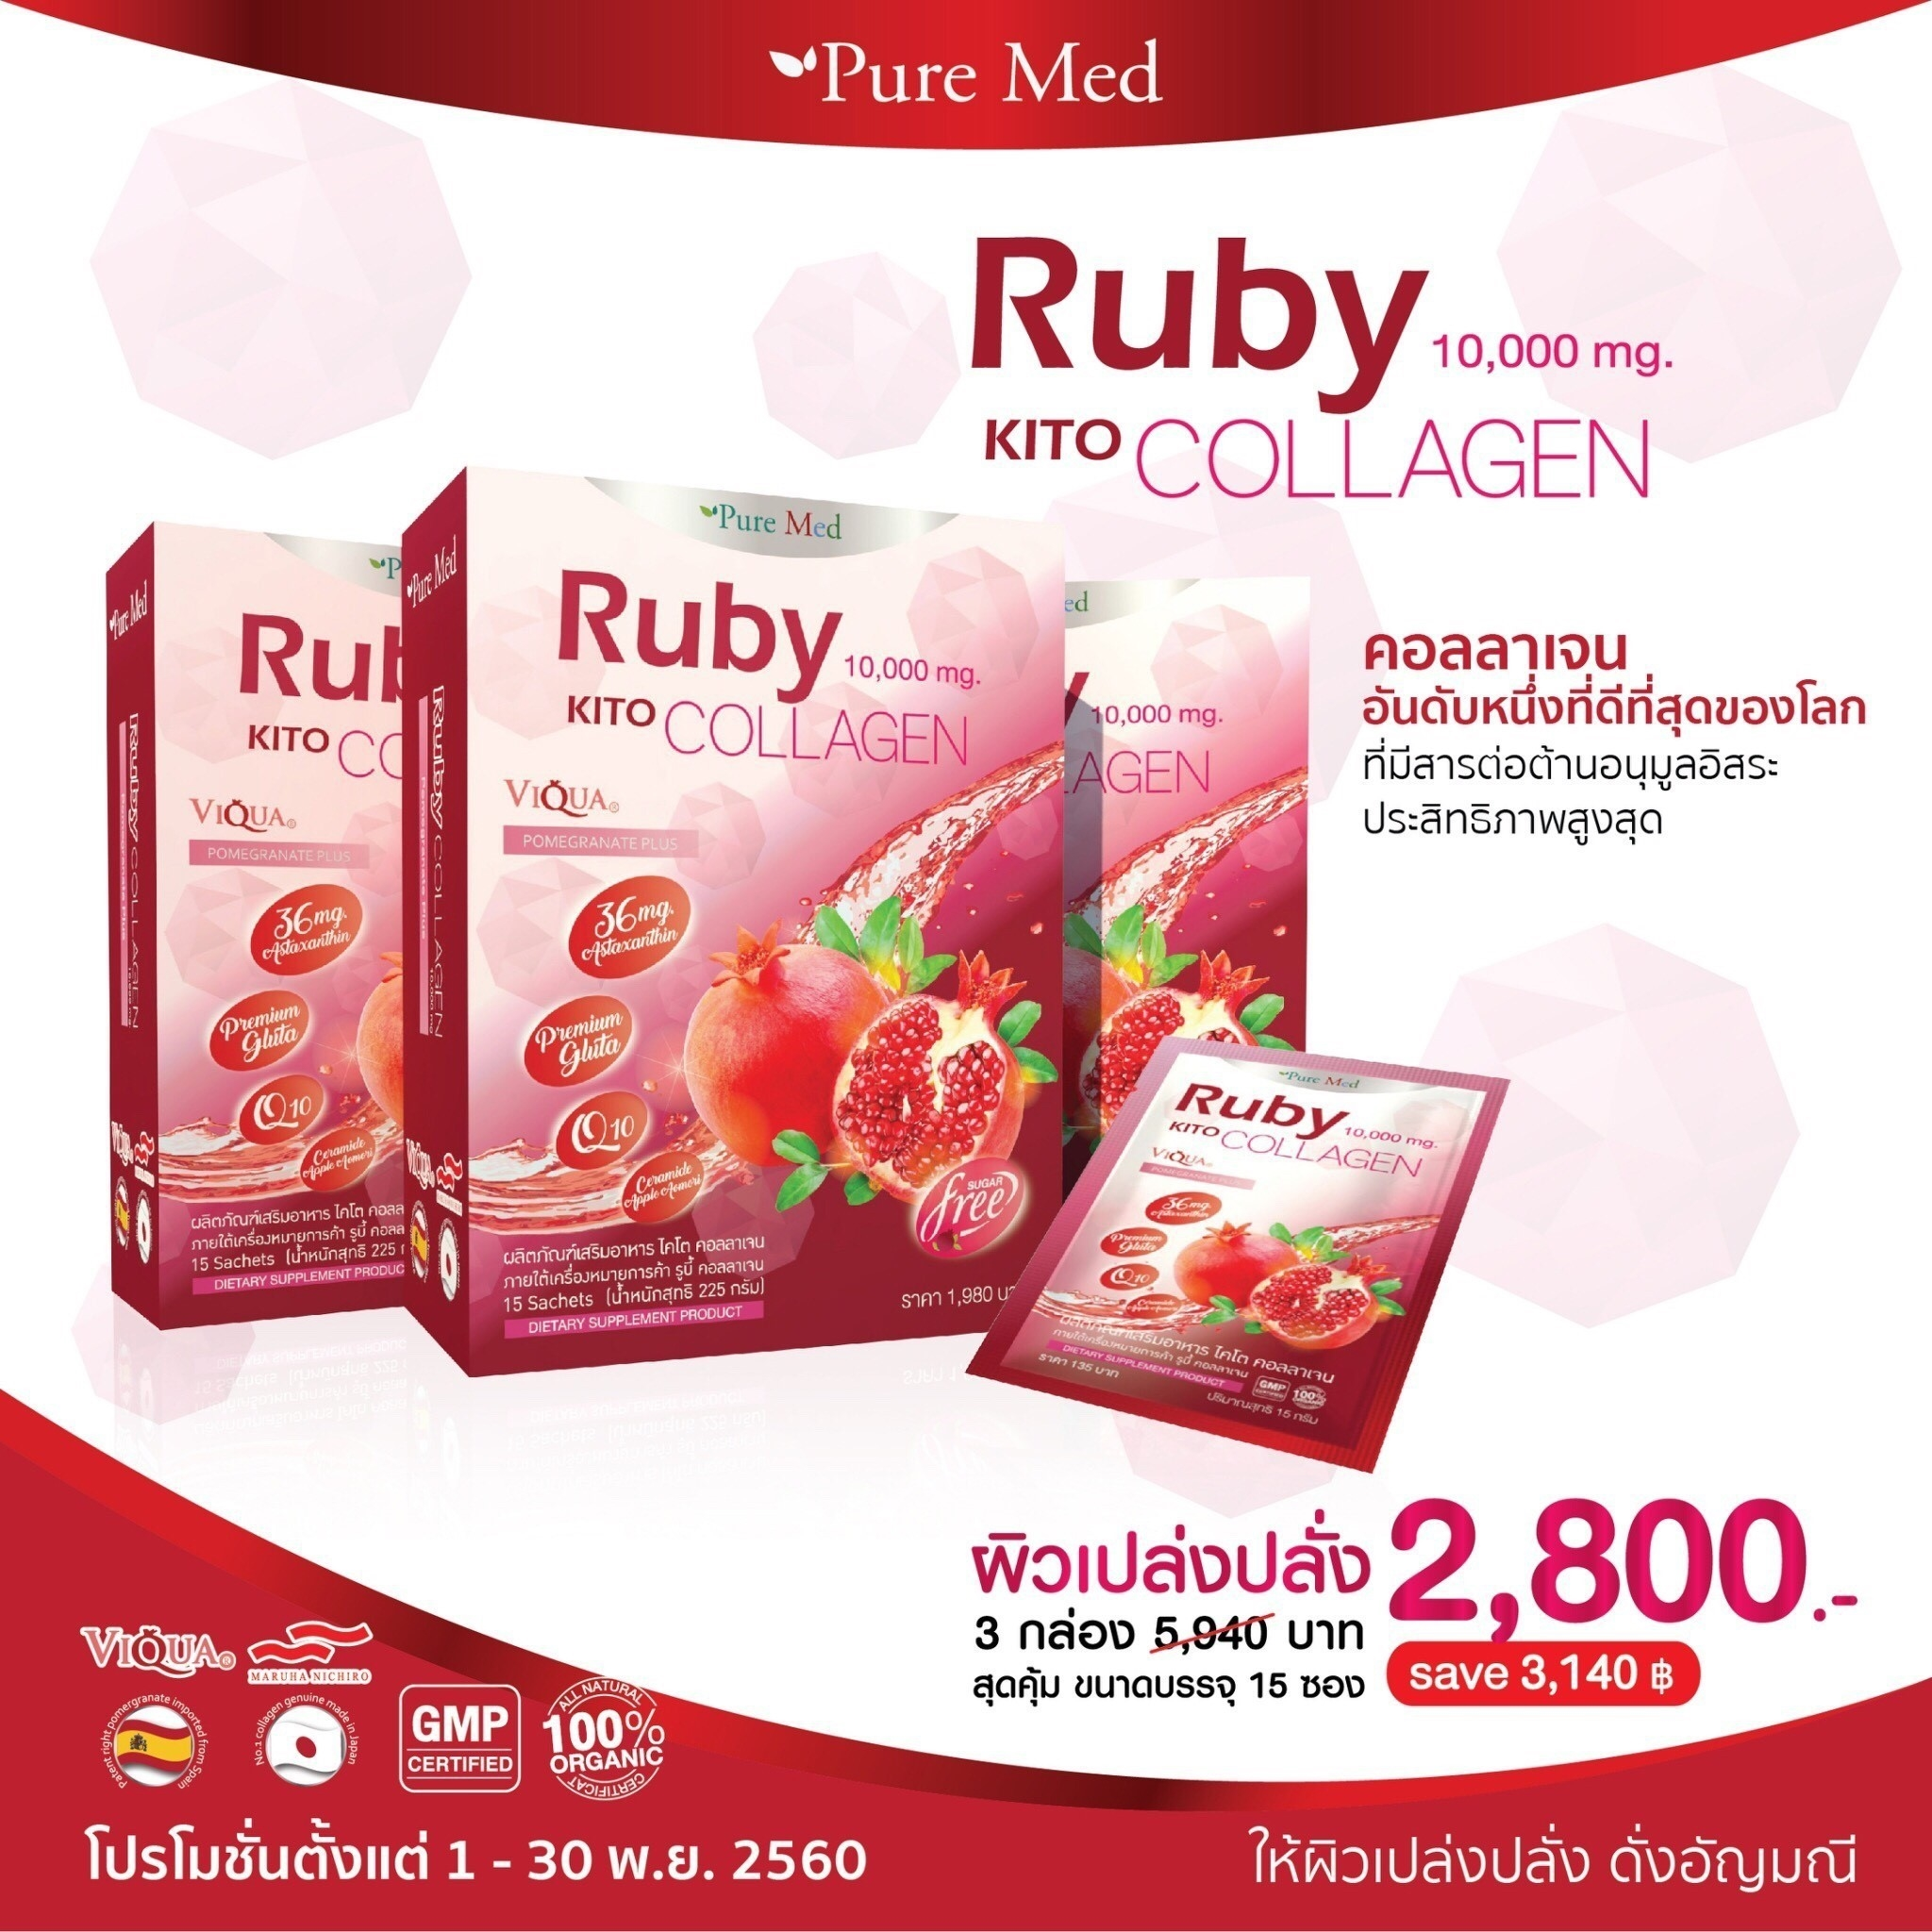 ruby kito collagen 10,000 mg. 3 กล่อง